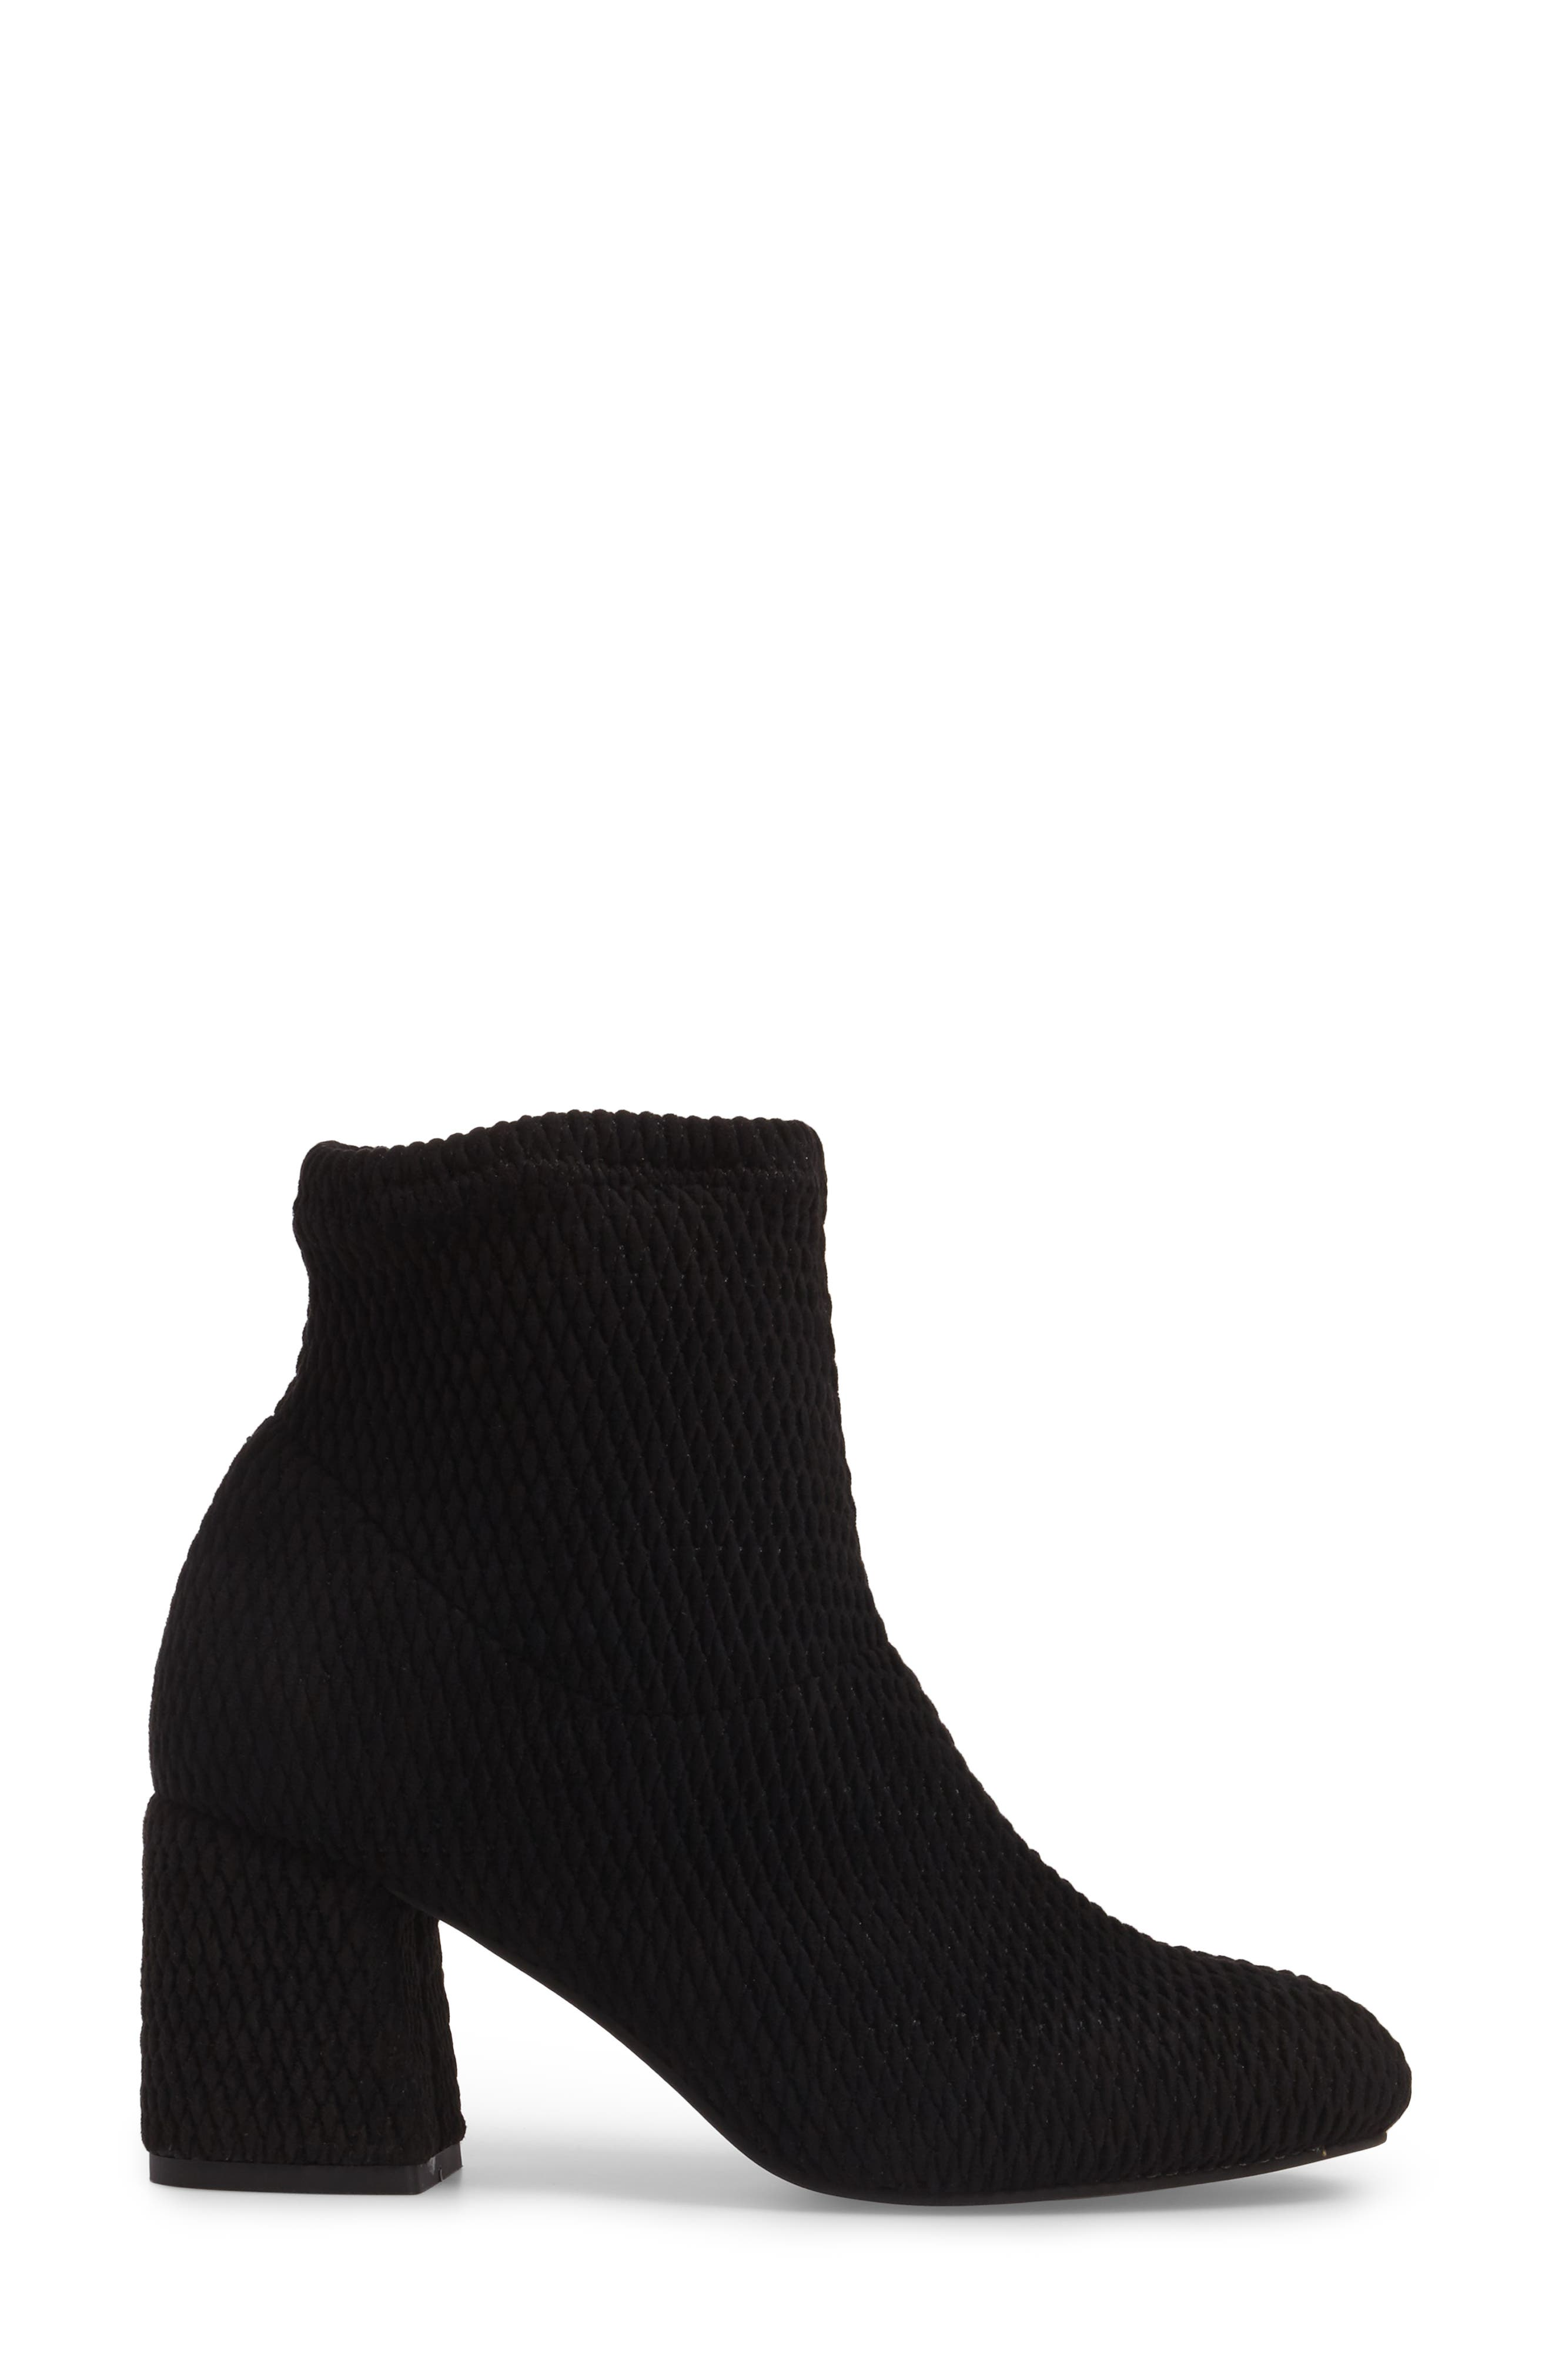 Ad Lib Sock Bootie,                             Alternate thumbnail 3, color,                             001